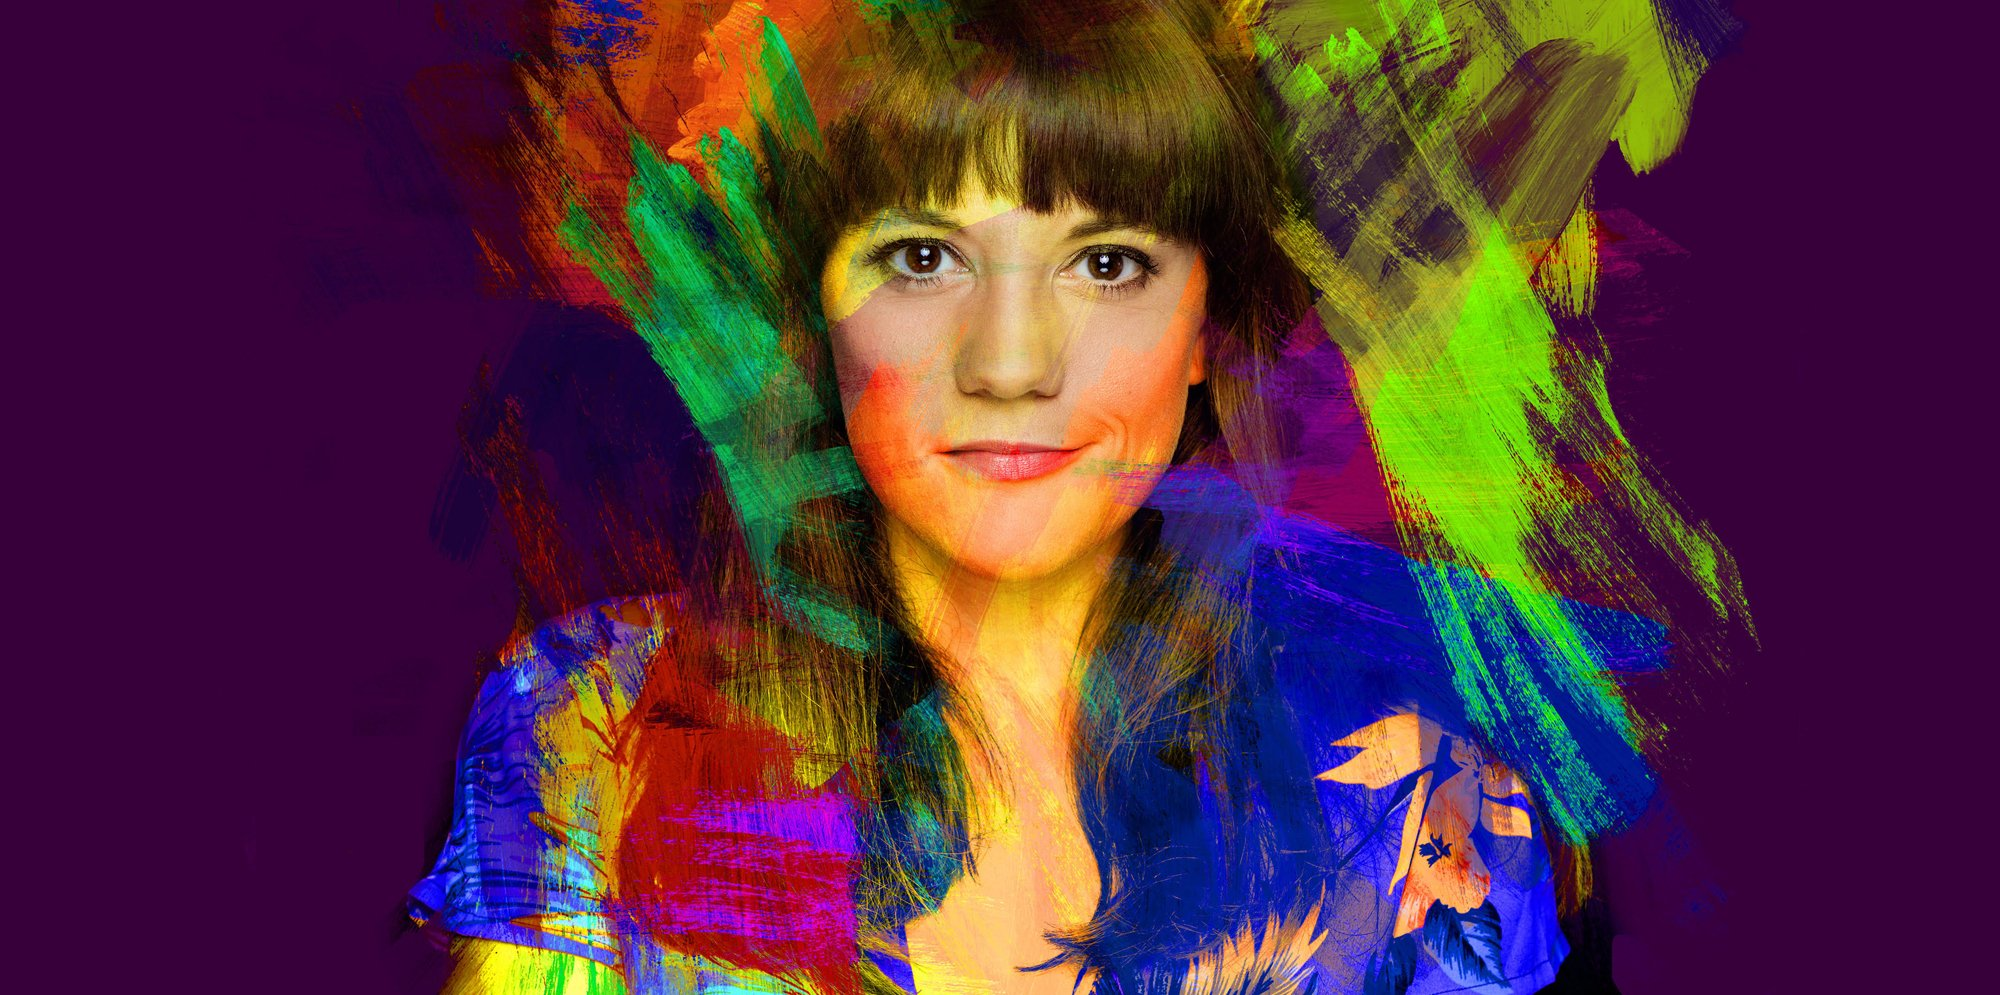 Vikki Stone looking into the camera, her image covered in broad strokes of colourful paint